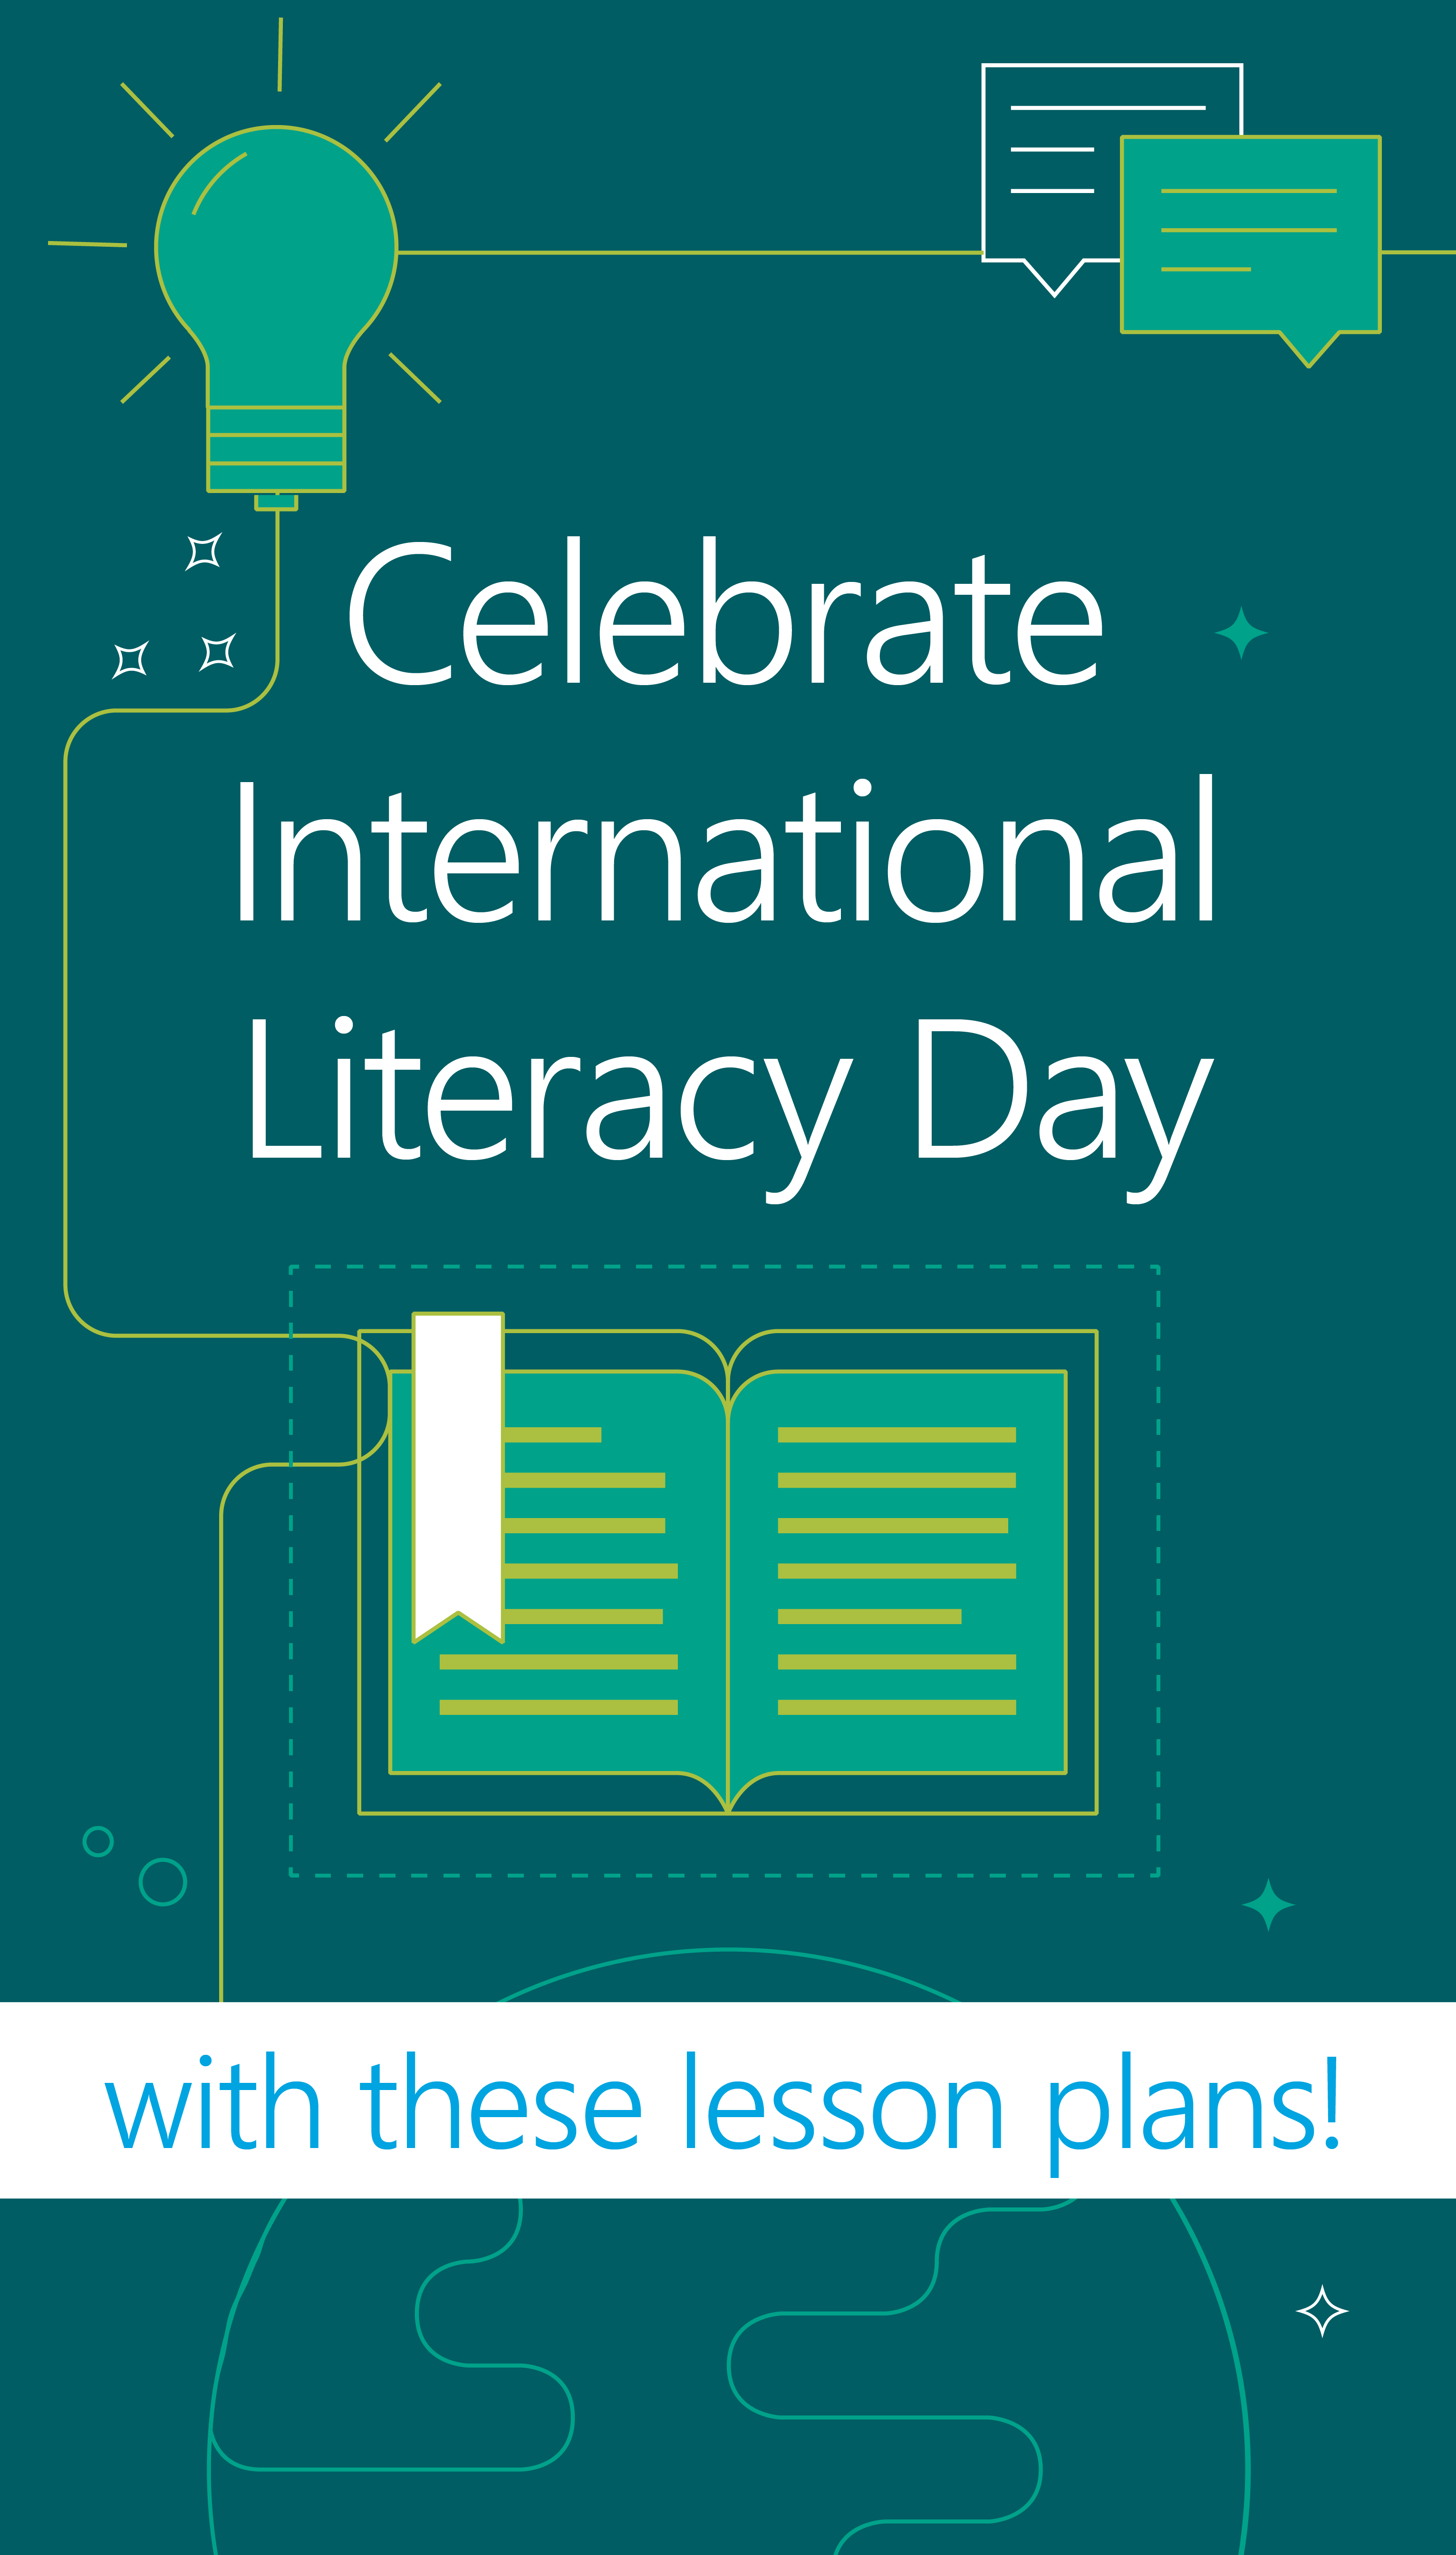 International Literacy Day is coming up! Celebrate with